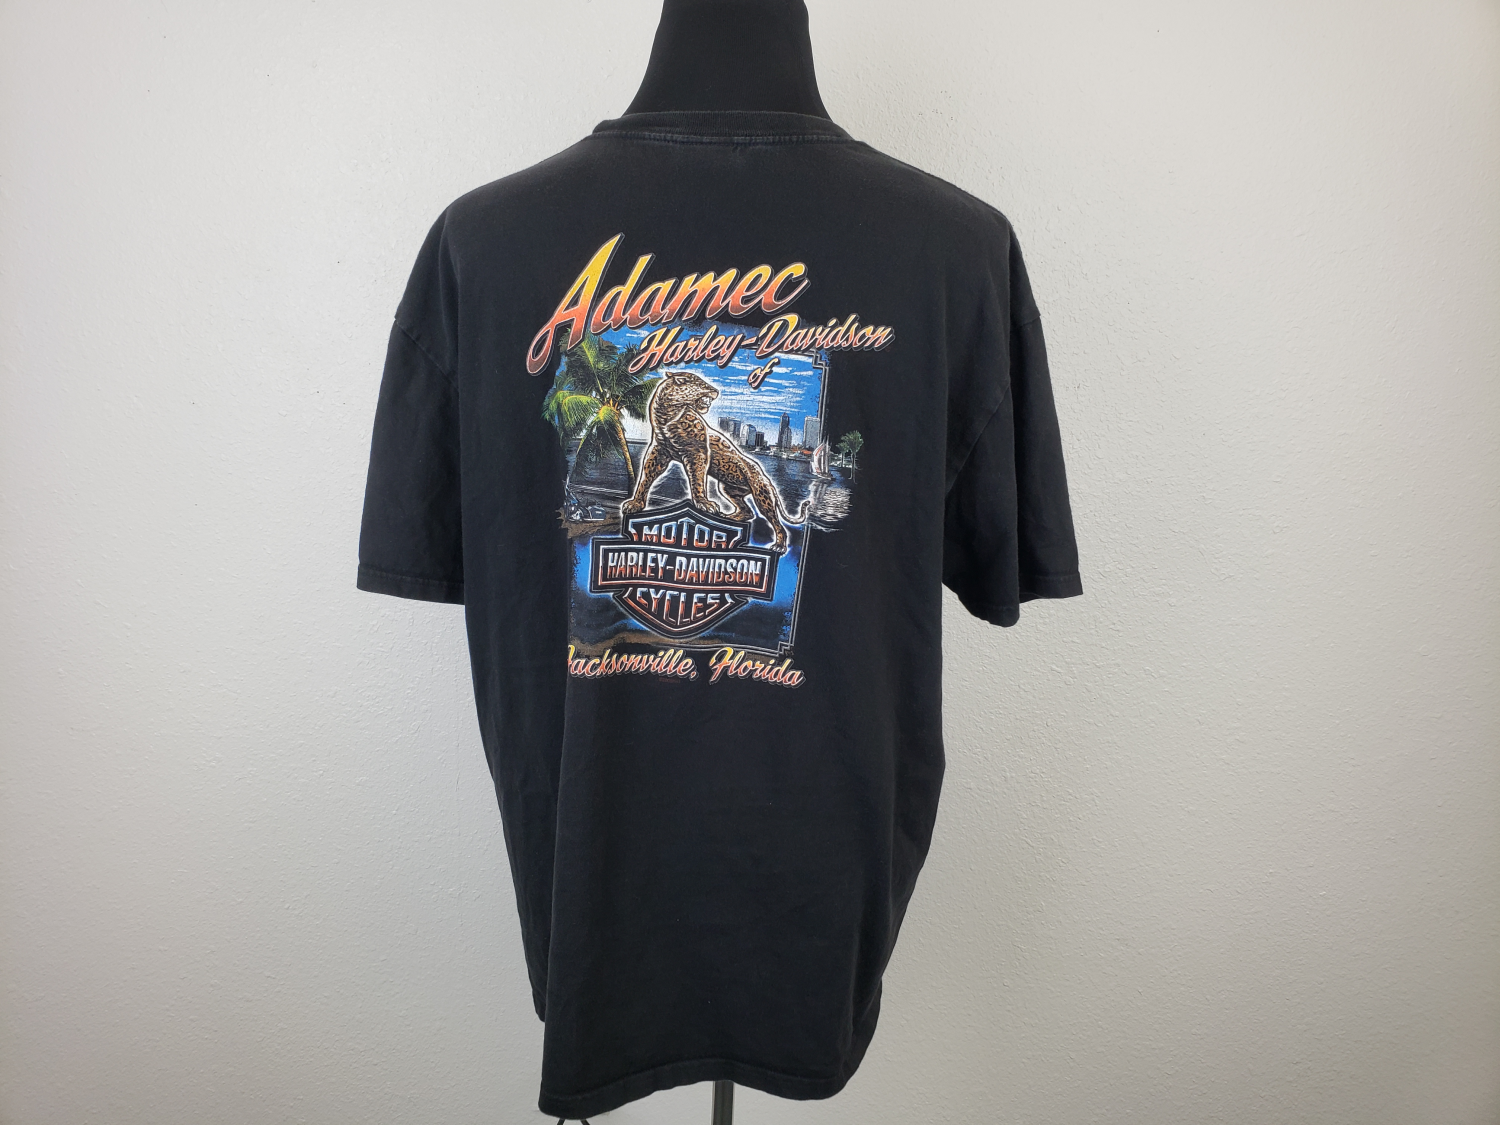 Primary image for Harley Davidson Jacksonville Mens T-shirt Size 2XL Black QC20